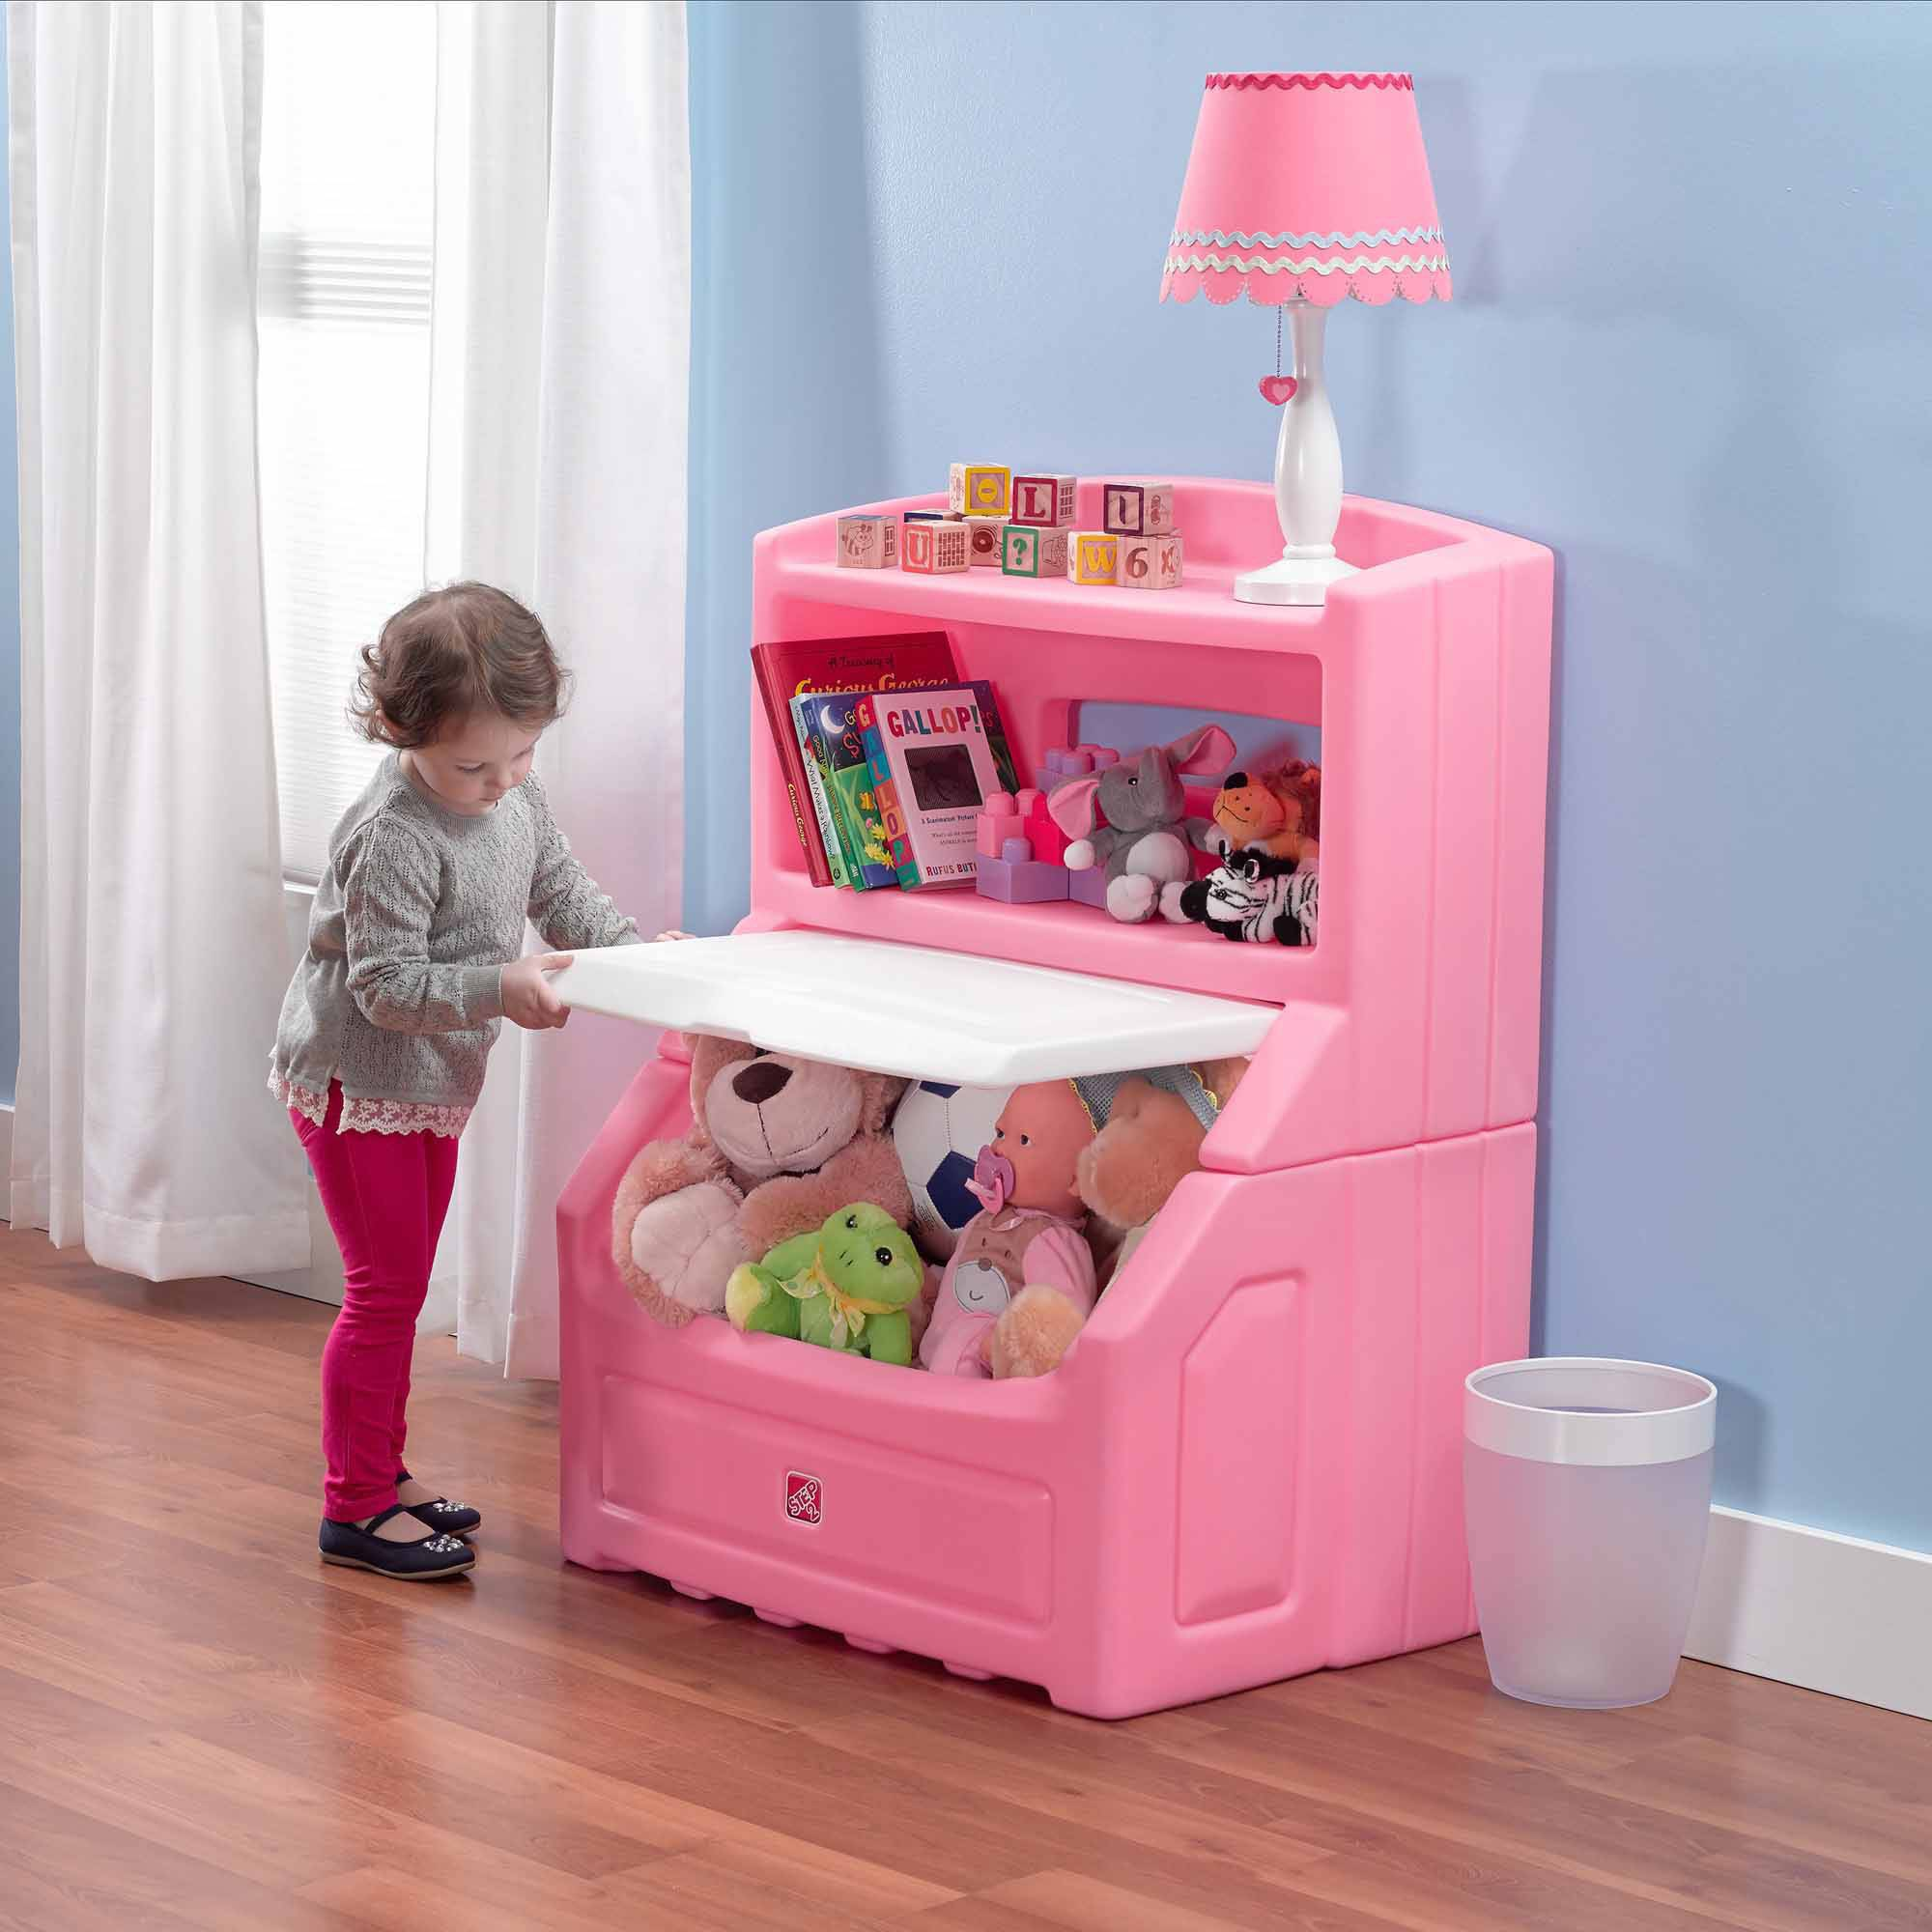 Merveilleux Toy Storage Box Chest Bin Large Organizer Kids Bedroom Playroom Bookcase  Pink